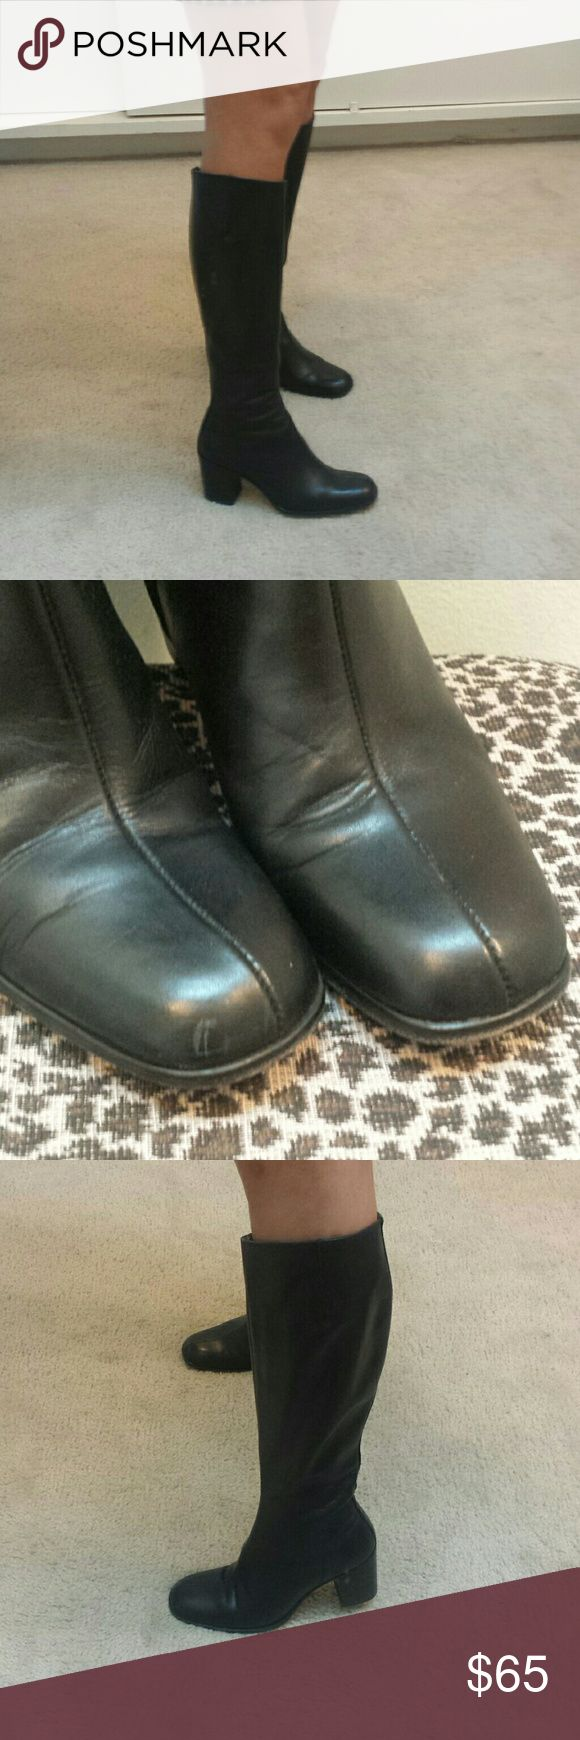 Charles David leather tall boots size 6 Great used condition. Leather is amazing. Tight fit. Fits small size 6. Looks good with jeans or skirt. Scuff on left shoe. See second photo Charles David Shoes